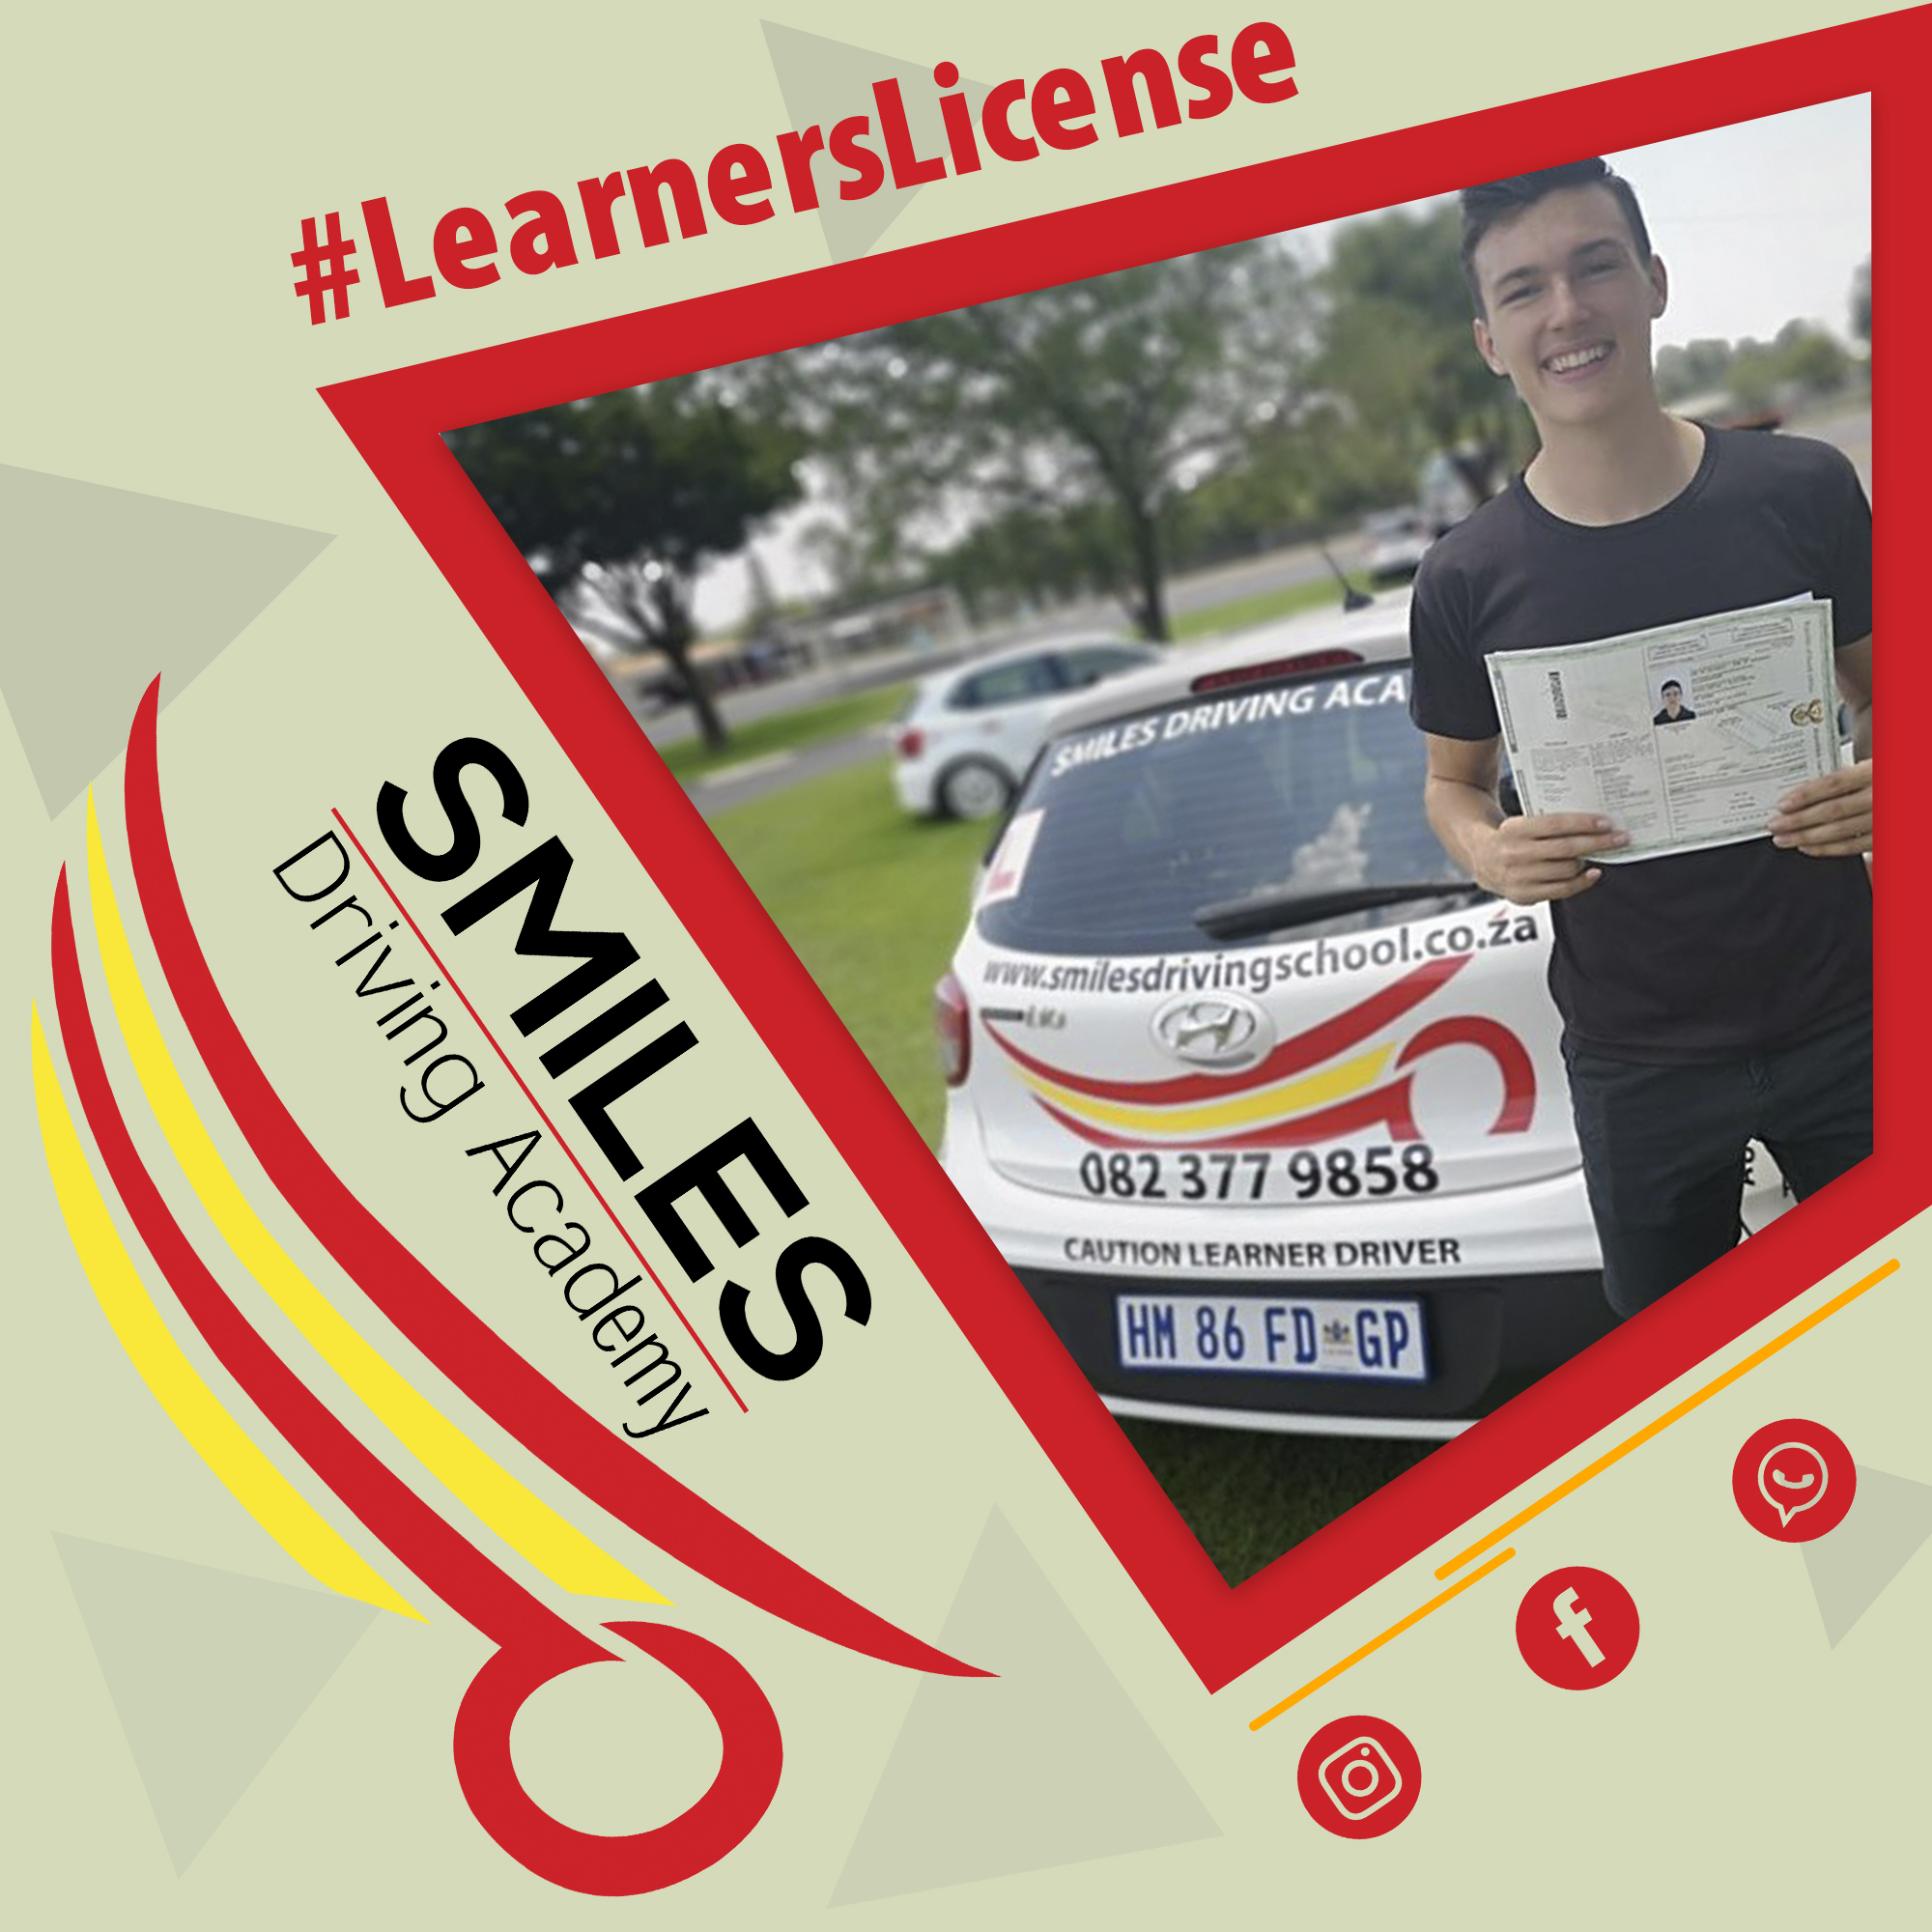 Smiles 9 Feb - What is a learners license